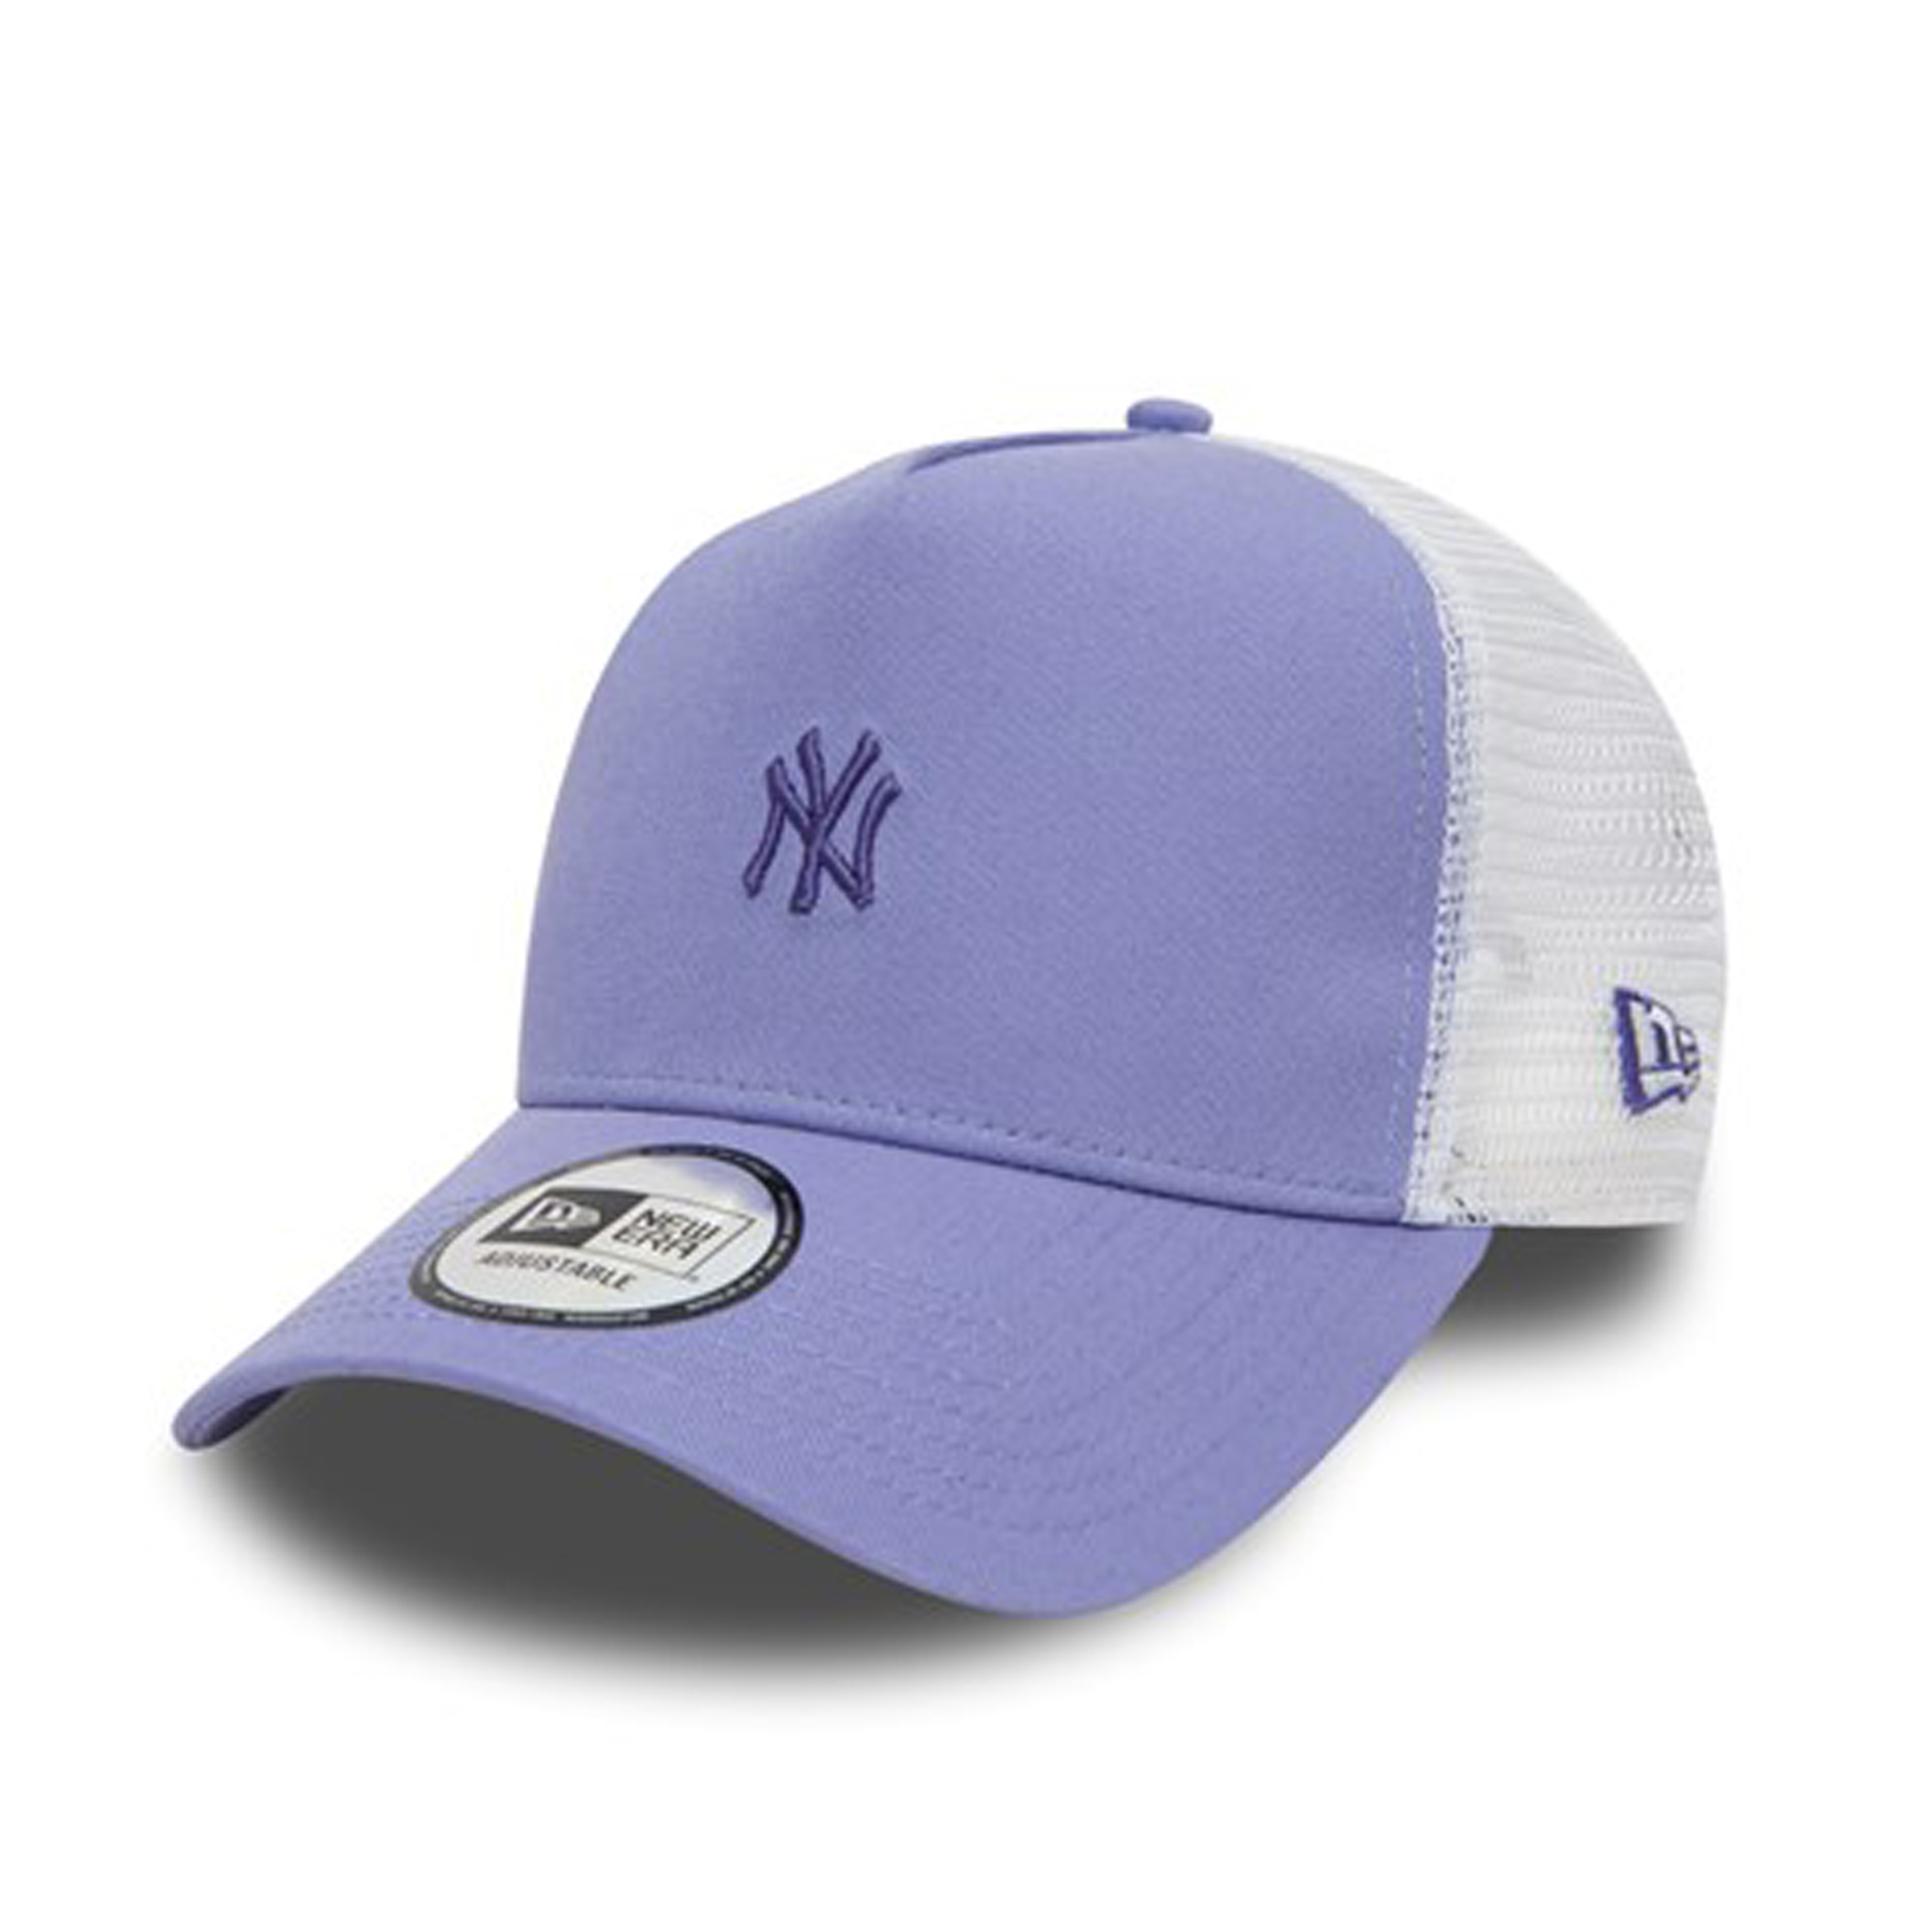 Details about New Era Women s Pastel Trucker New York Yankees Cap Purple  One Size aa3b180b4380